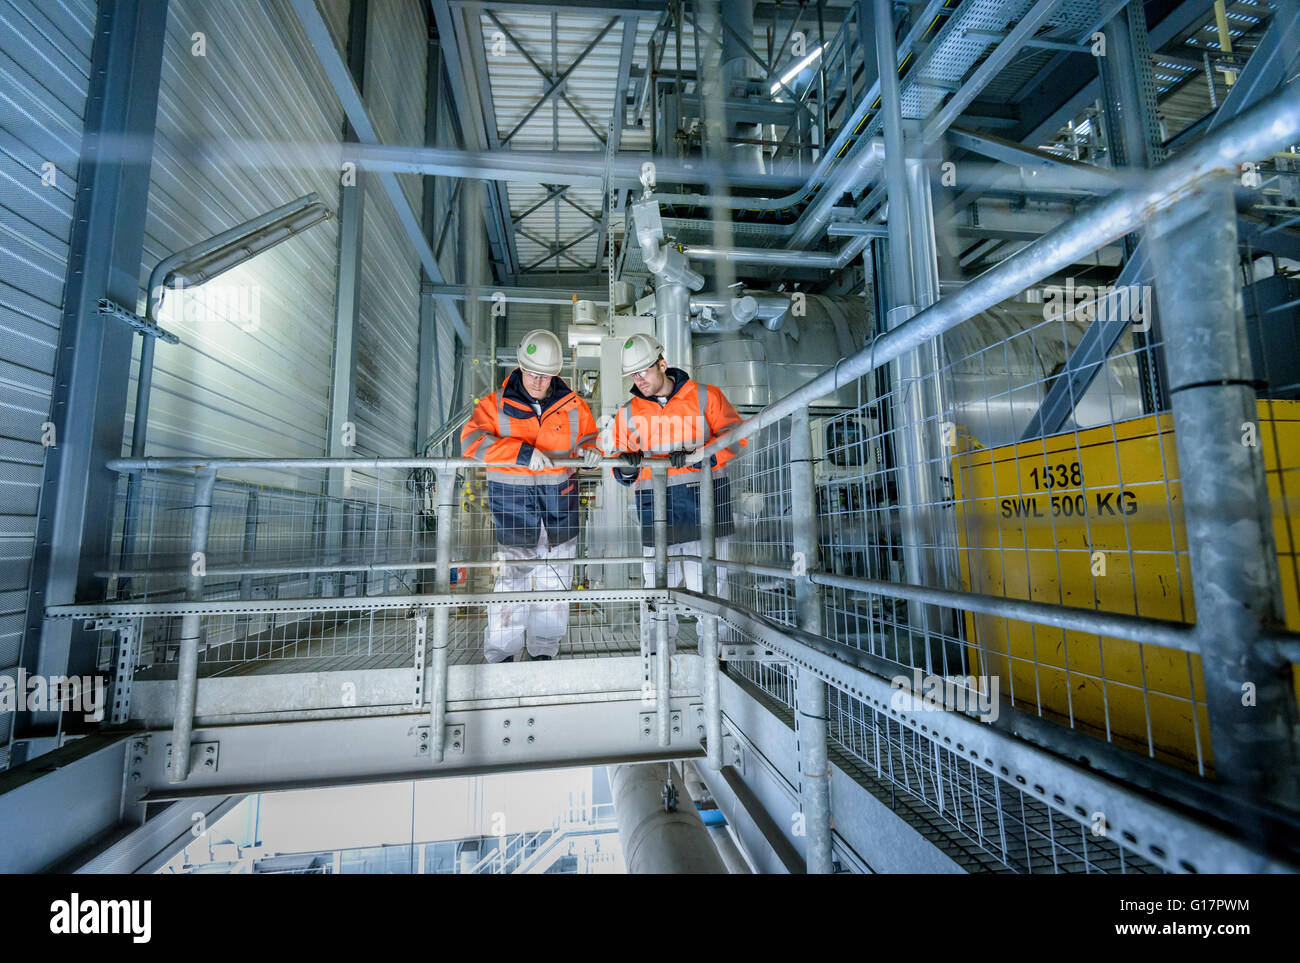 Workers on high level walkway in gas-fired power station - Stock Image